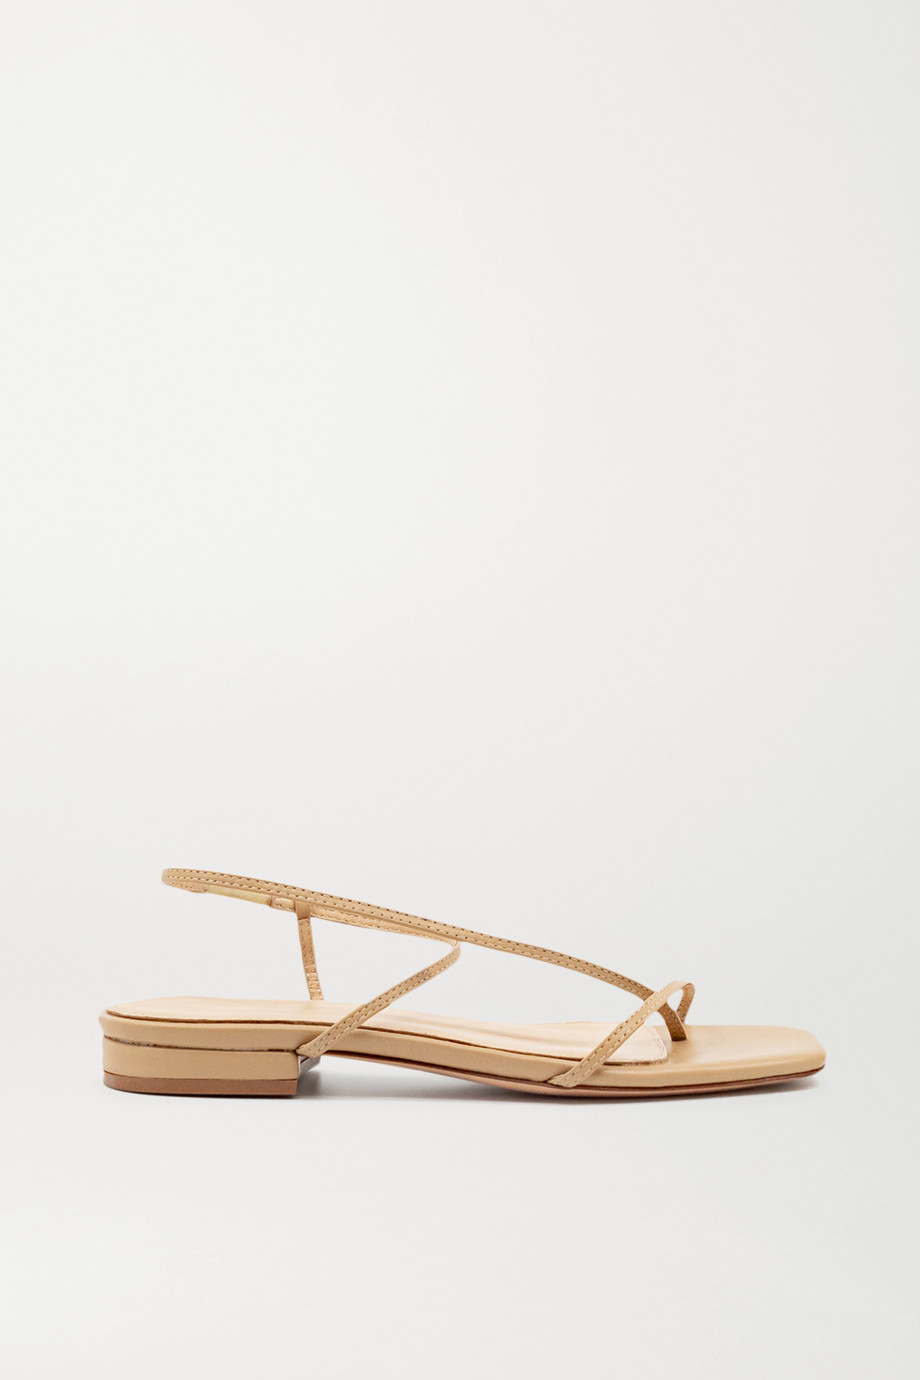 STUDIO AMELIA 1.22 leather sandals